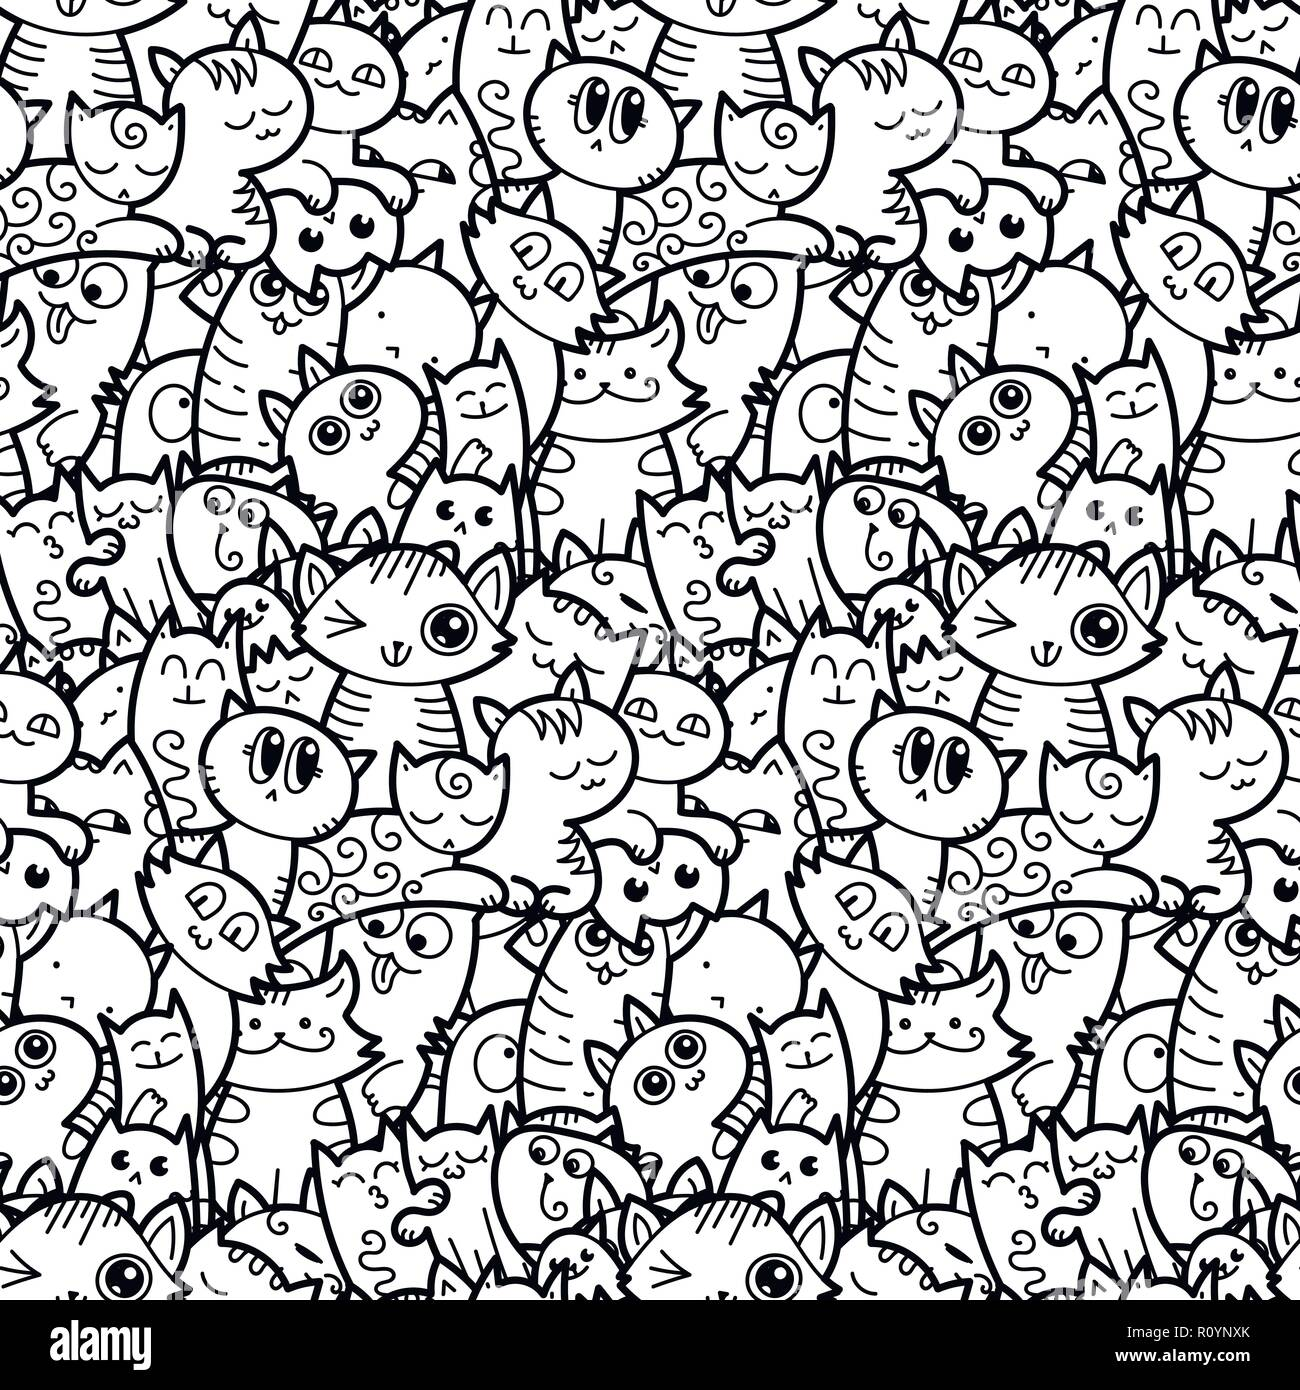 Funny Doodle Cats And Kittens Seamless Pattern For Prints Designs